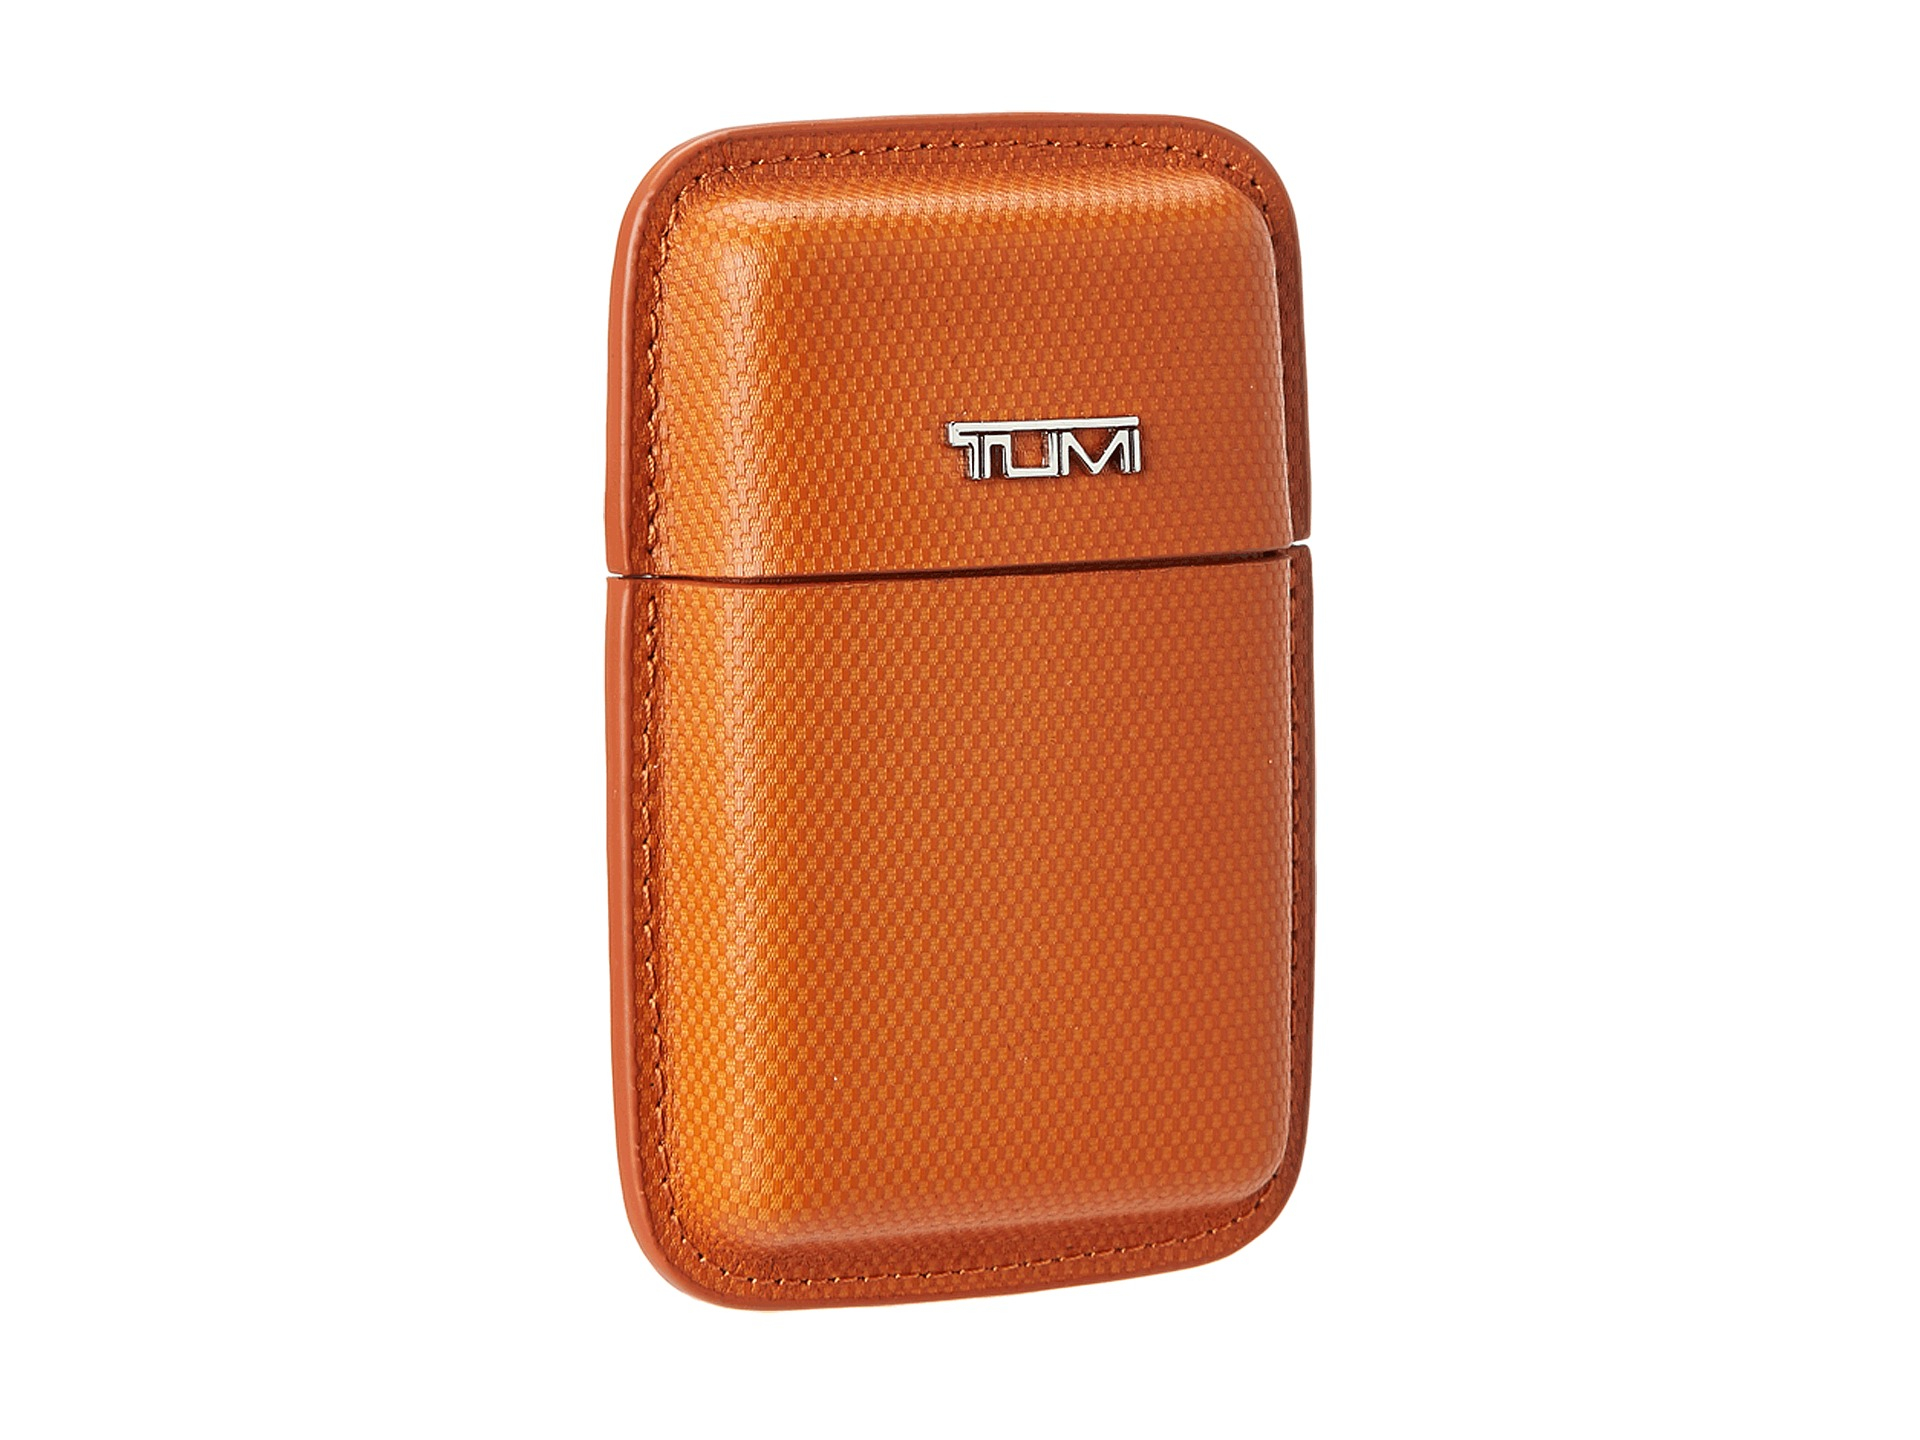 Lyst - Tumi Travel Accessory Structured Business Card Leather Case ...